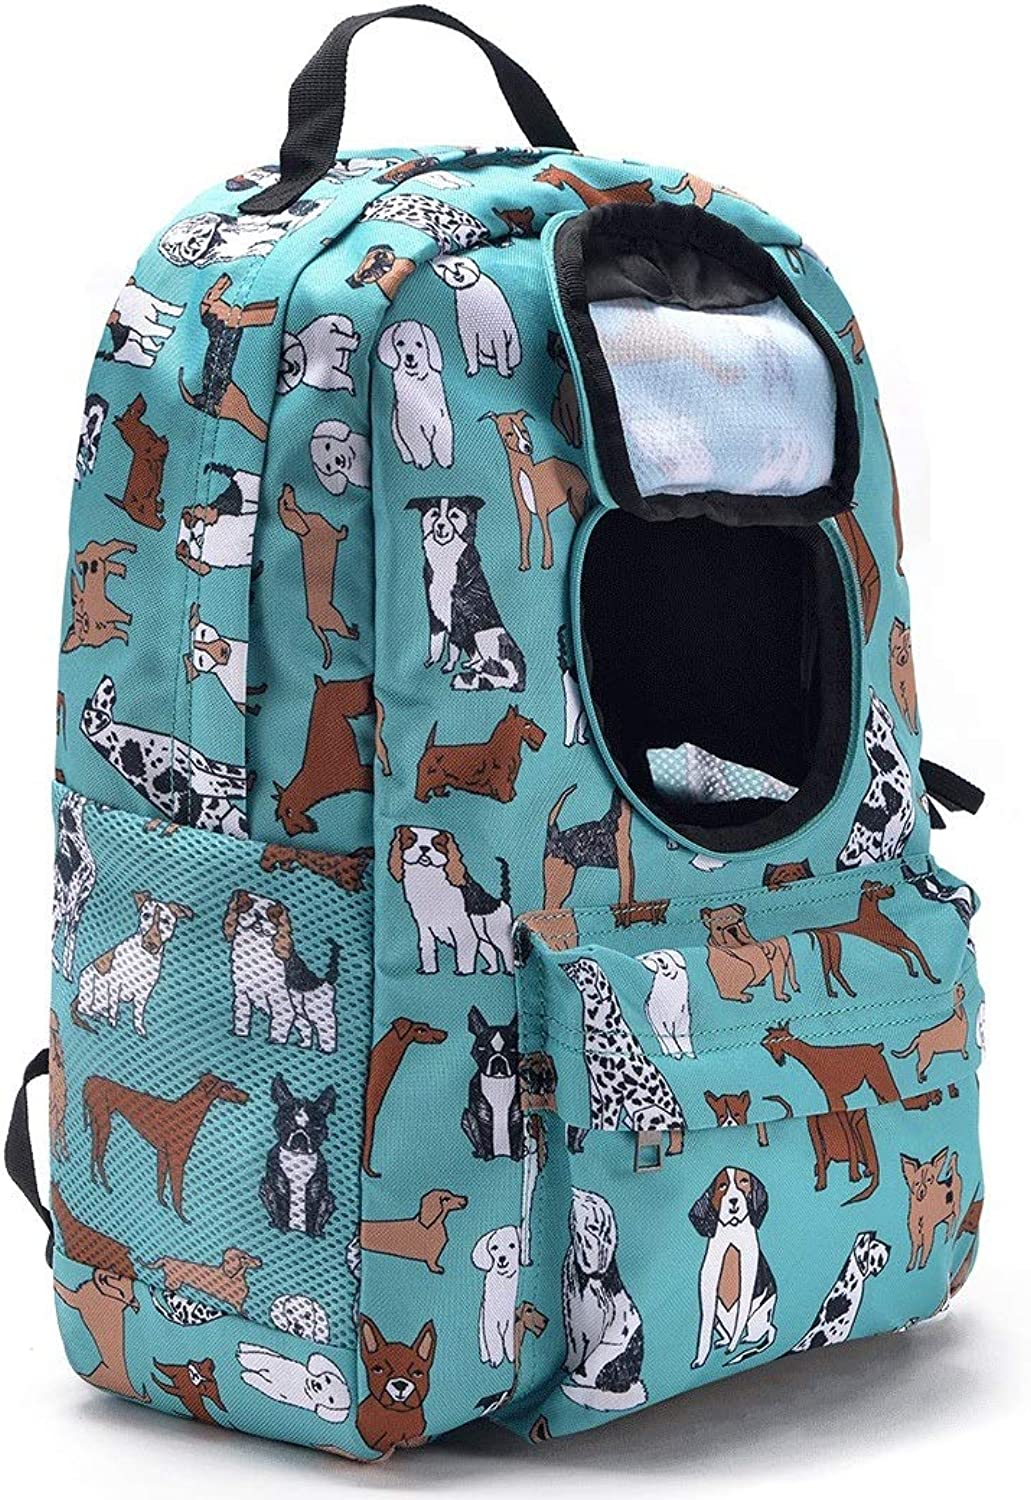 Pet Carrier Animal Bag for Cats Dogs, Carry Your Pet with You Safely and Comfortably